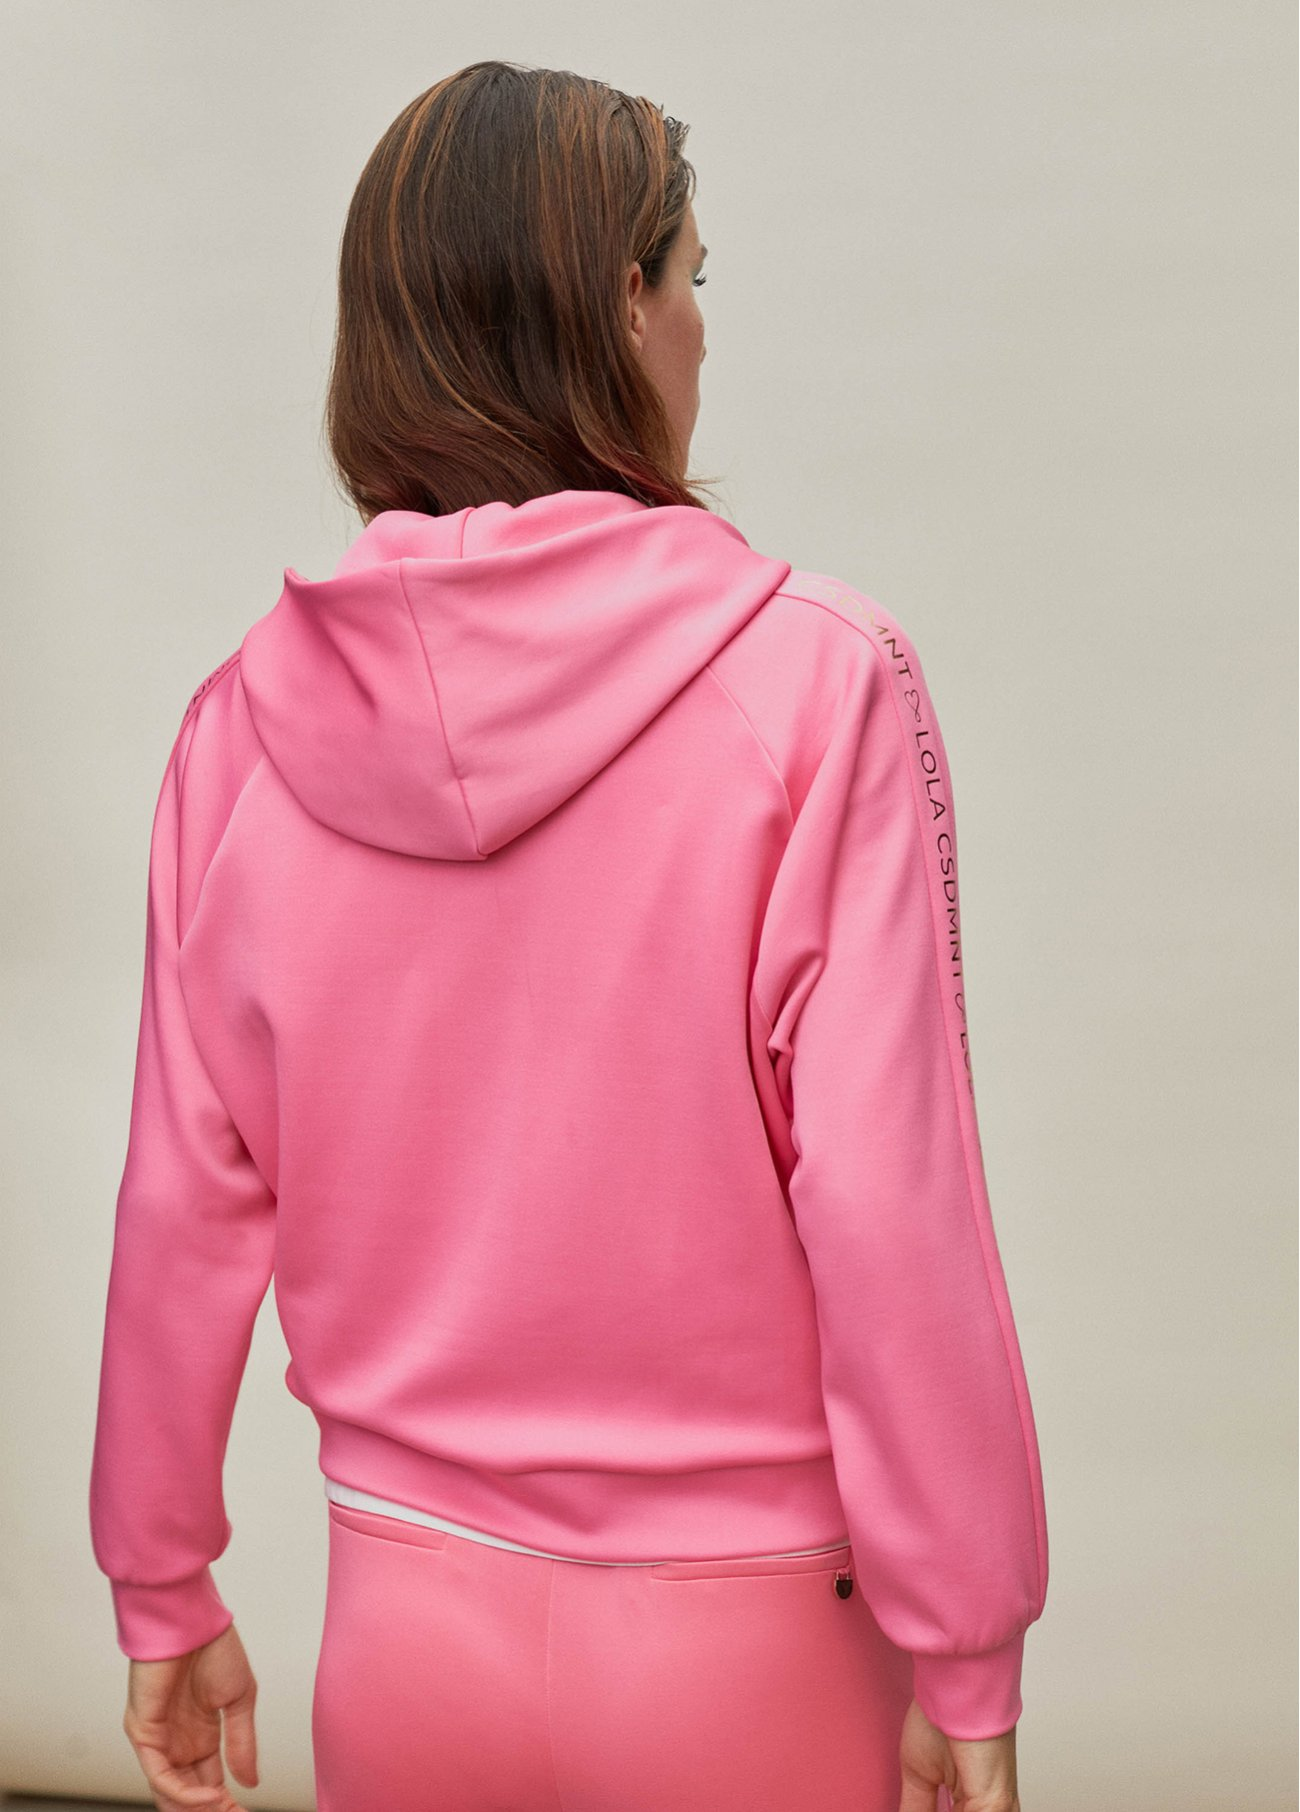 Hoodie with logo details